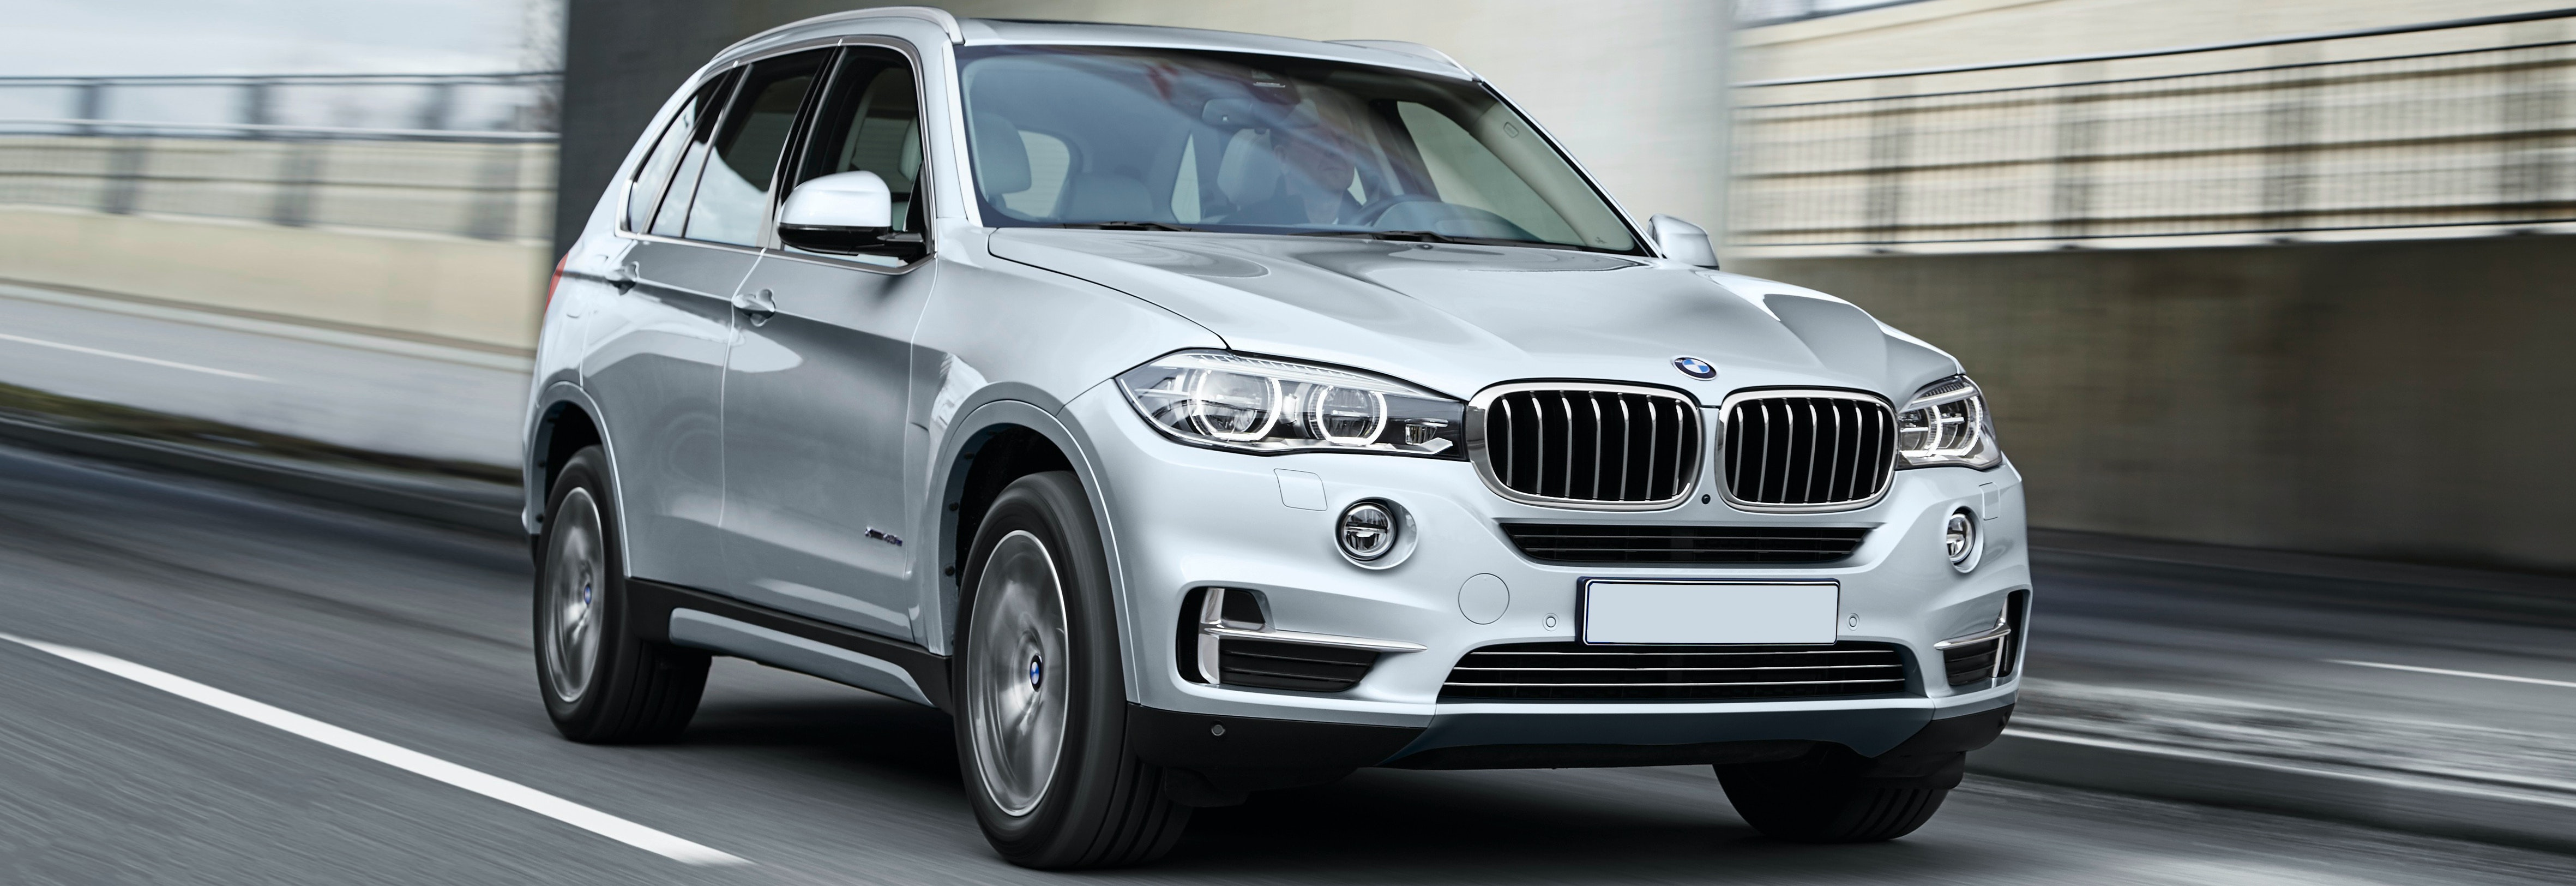 Silver BMW X5 Driving, Viewed From The Front